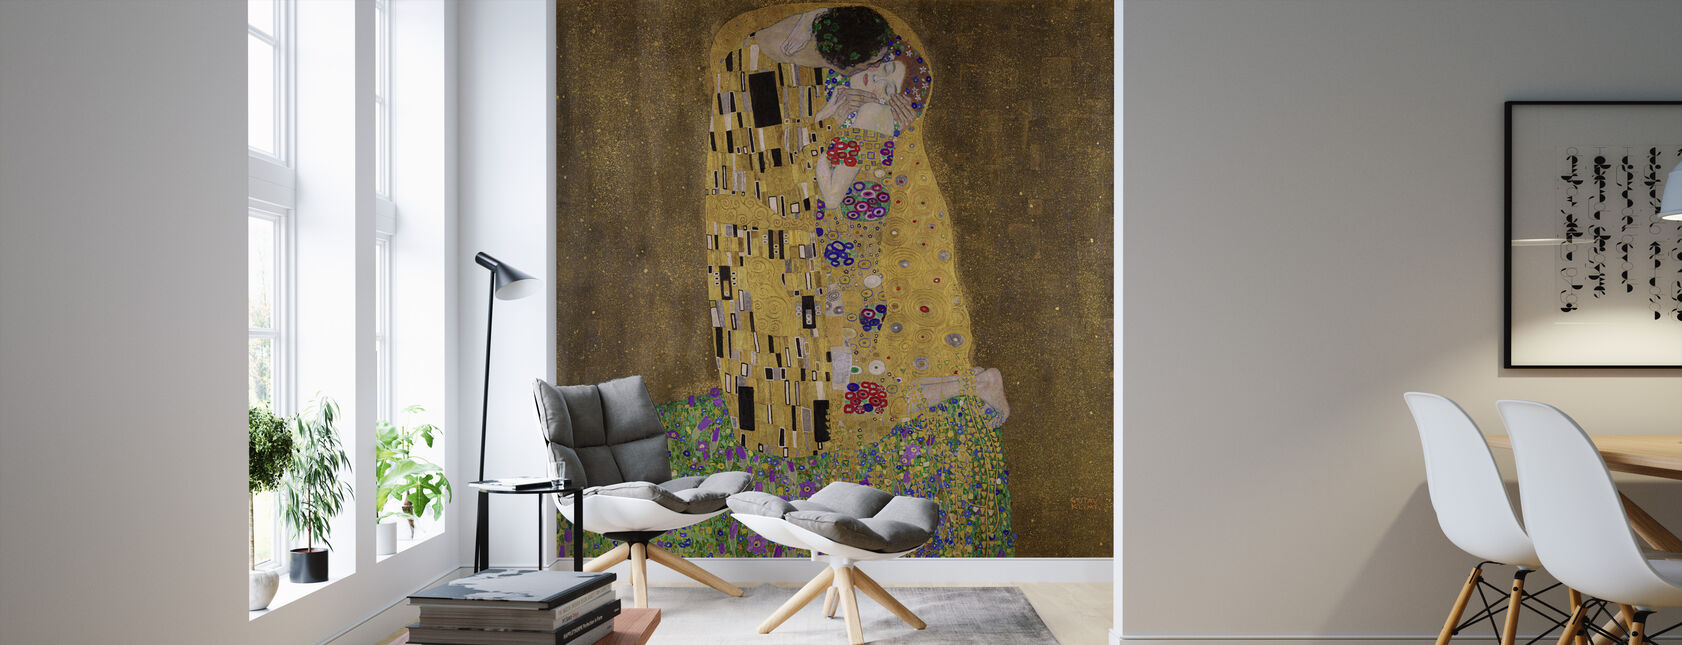 The Kiss, Gustav Klimt - Wallpaper - Living Room